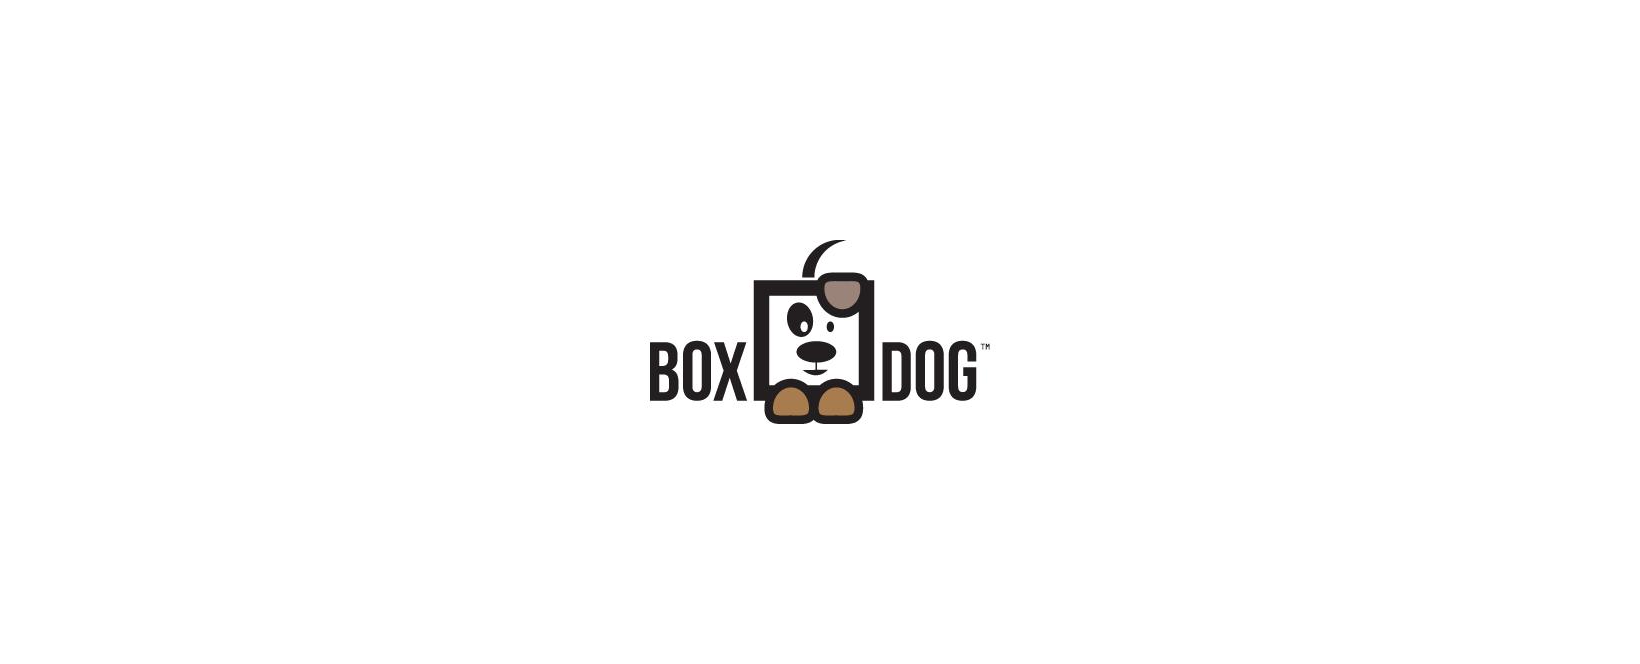 BoxDog And BoxCat Discount Code 2021